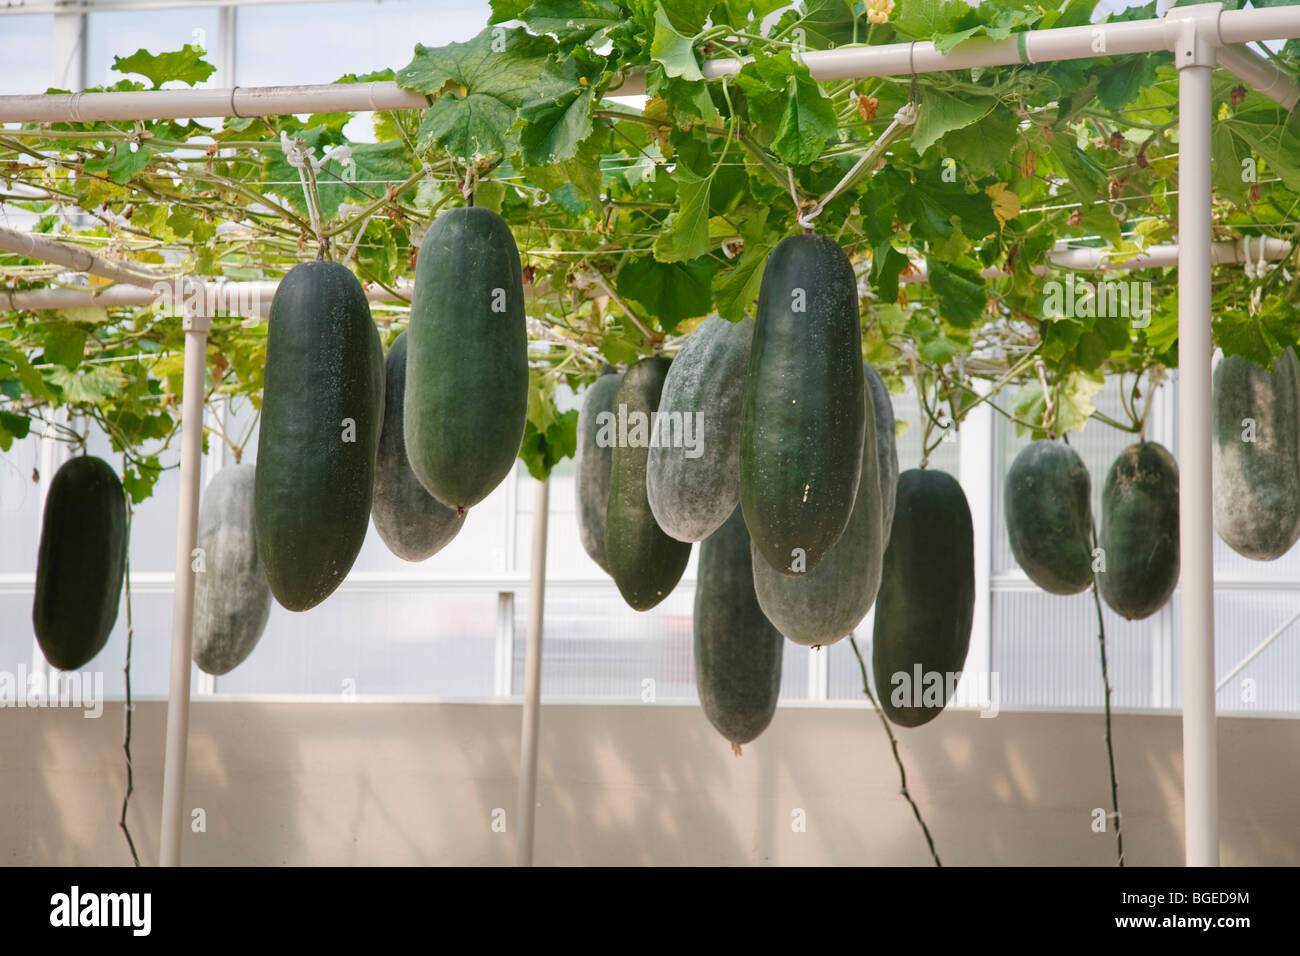 Hydroponics Used To Grow Winter Melons At Epcot Center